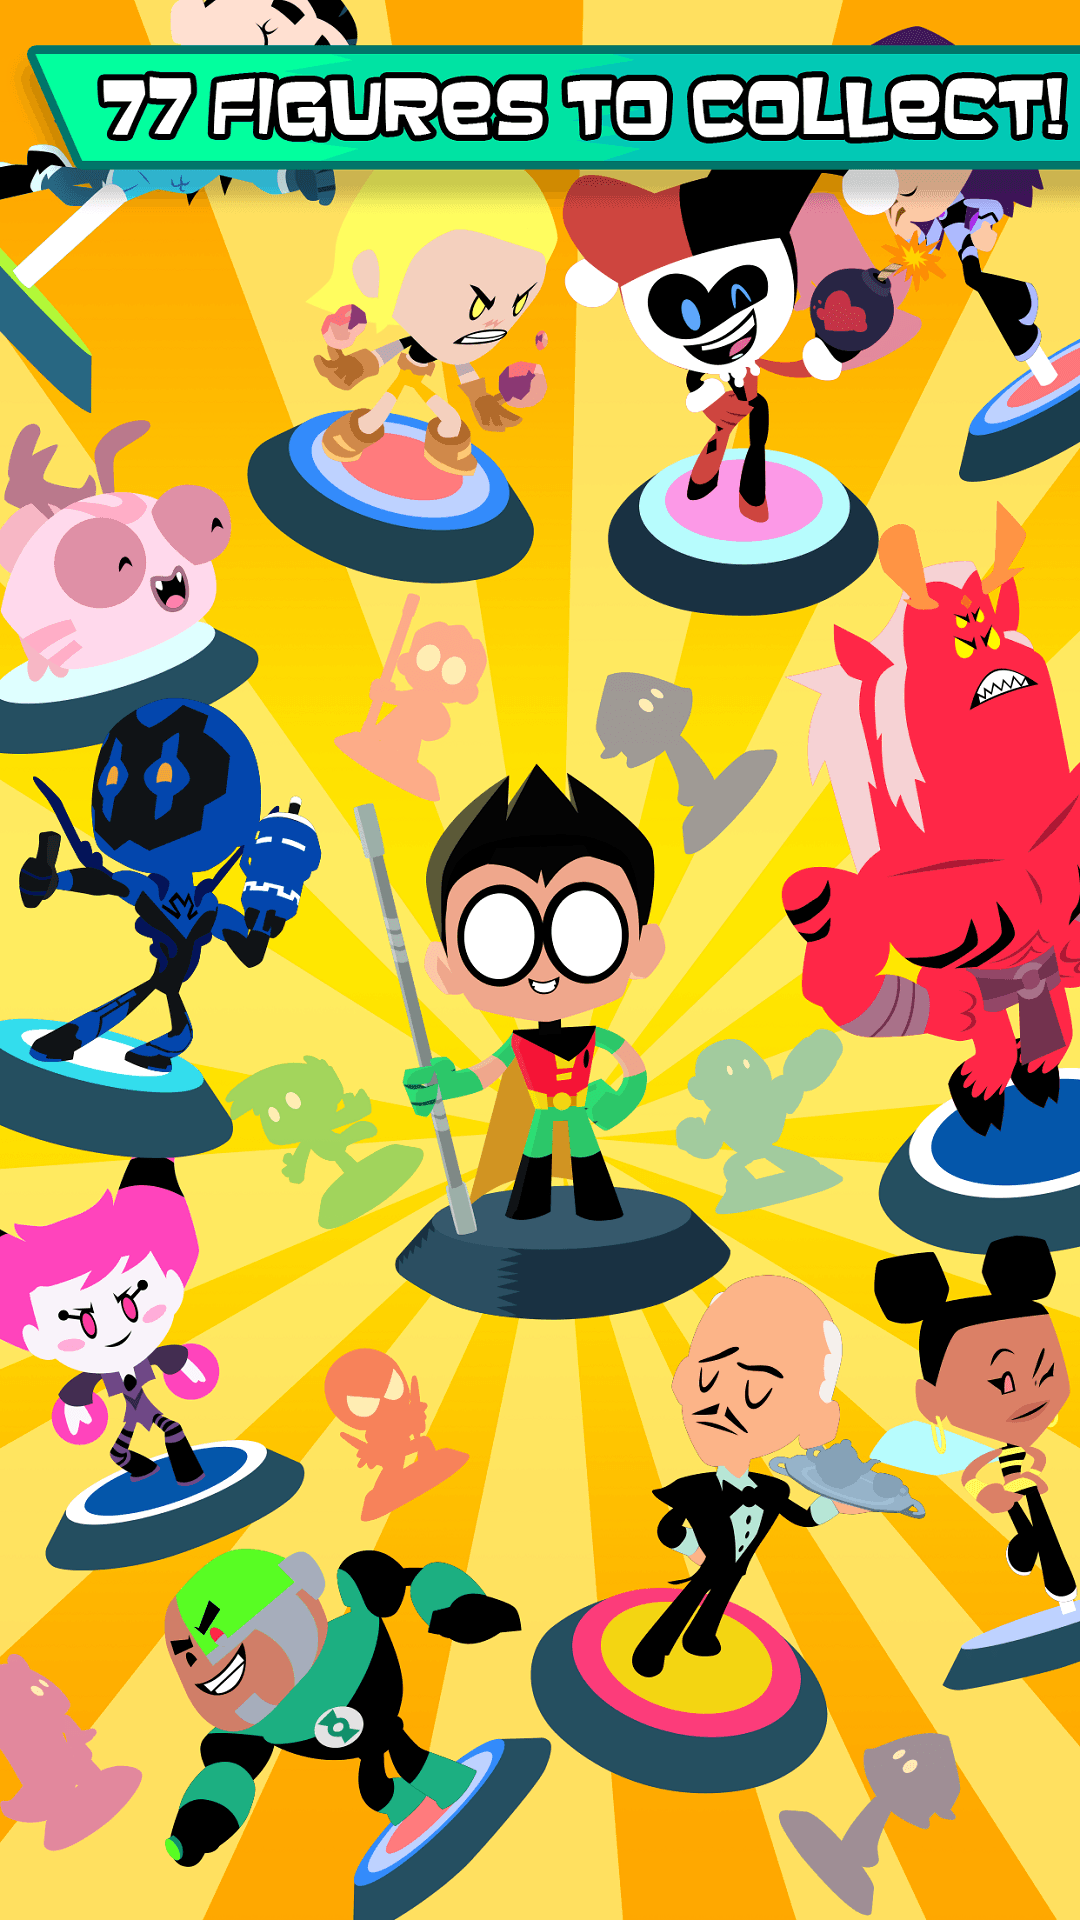 Download Teeny Titans  Teen Titans Go On Pc With Bluestacks-3132